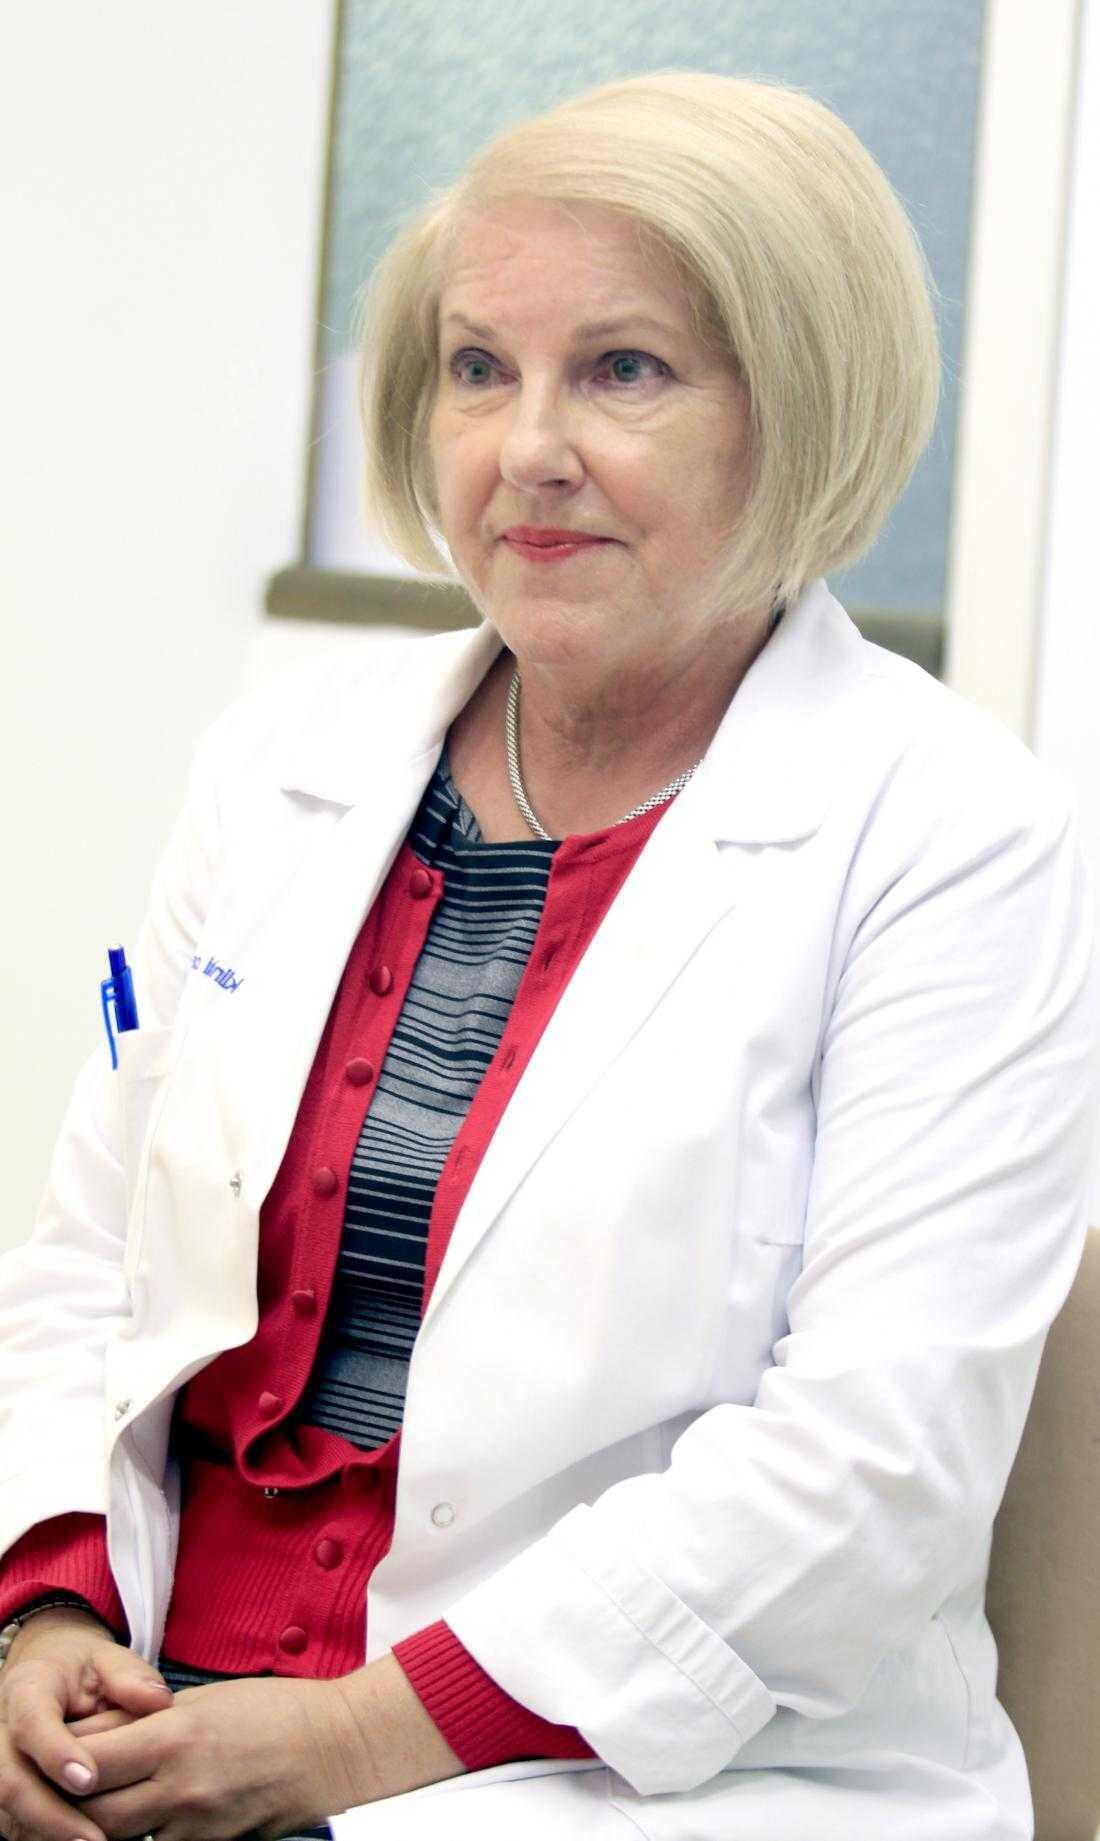 Brigita Drnovsek-Olup, MD, PhD - Ophthalmology